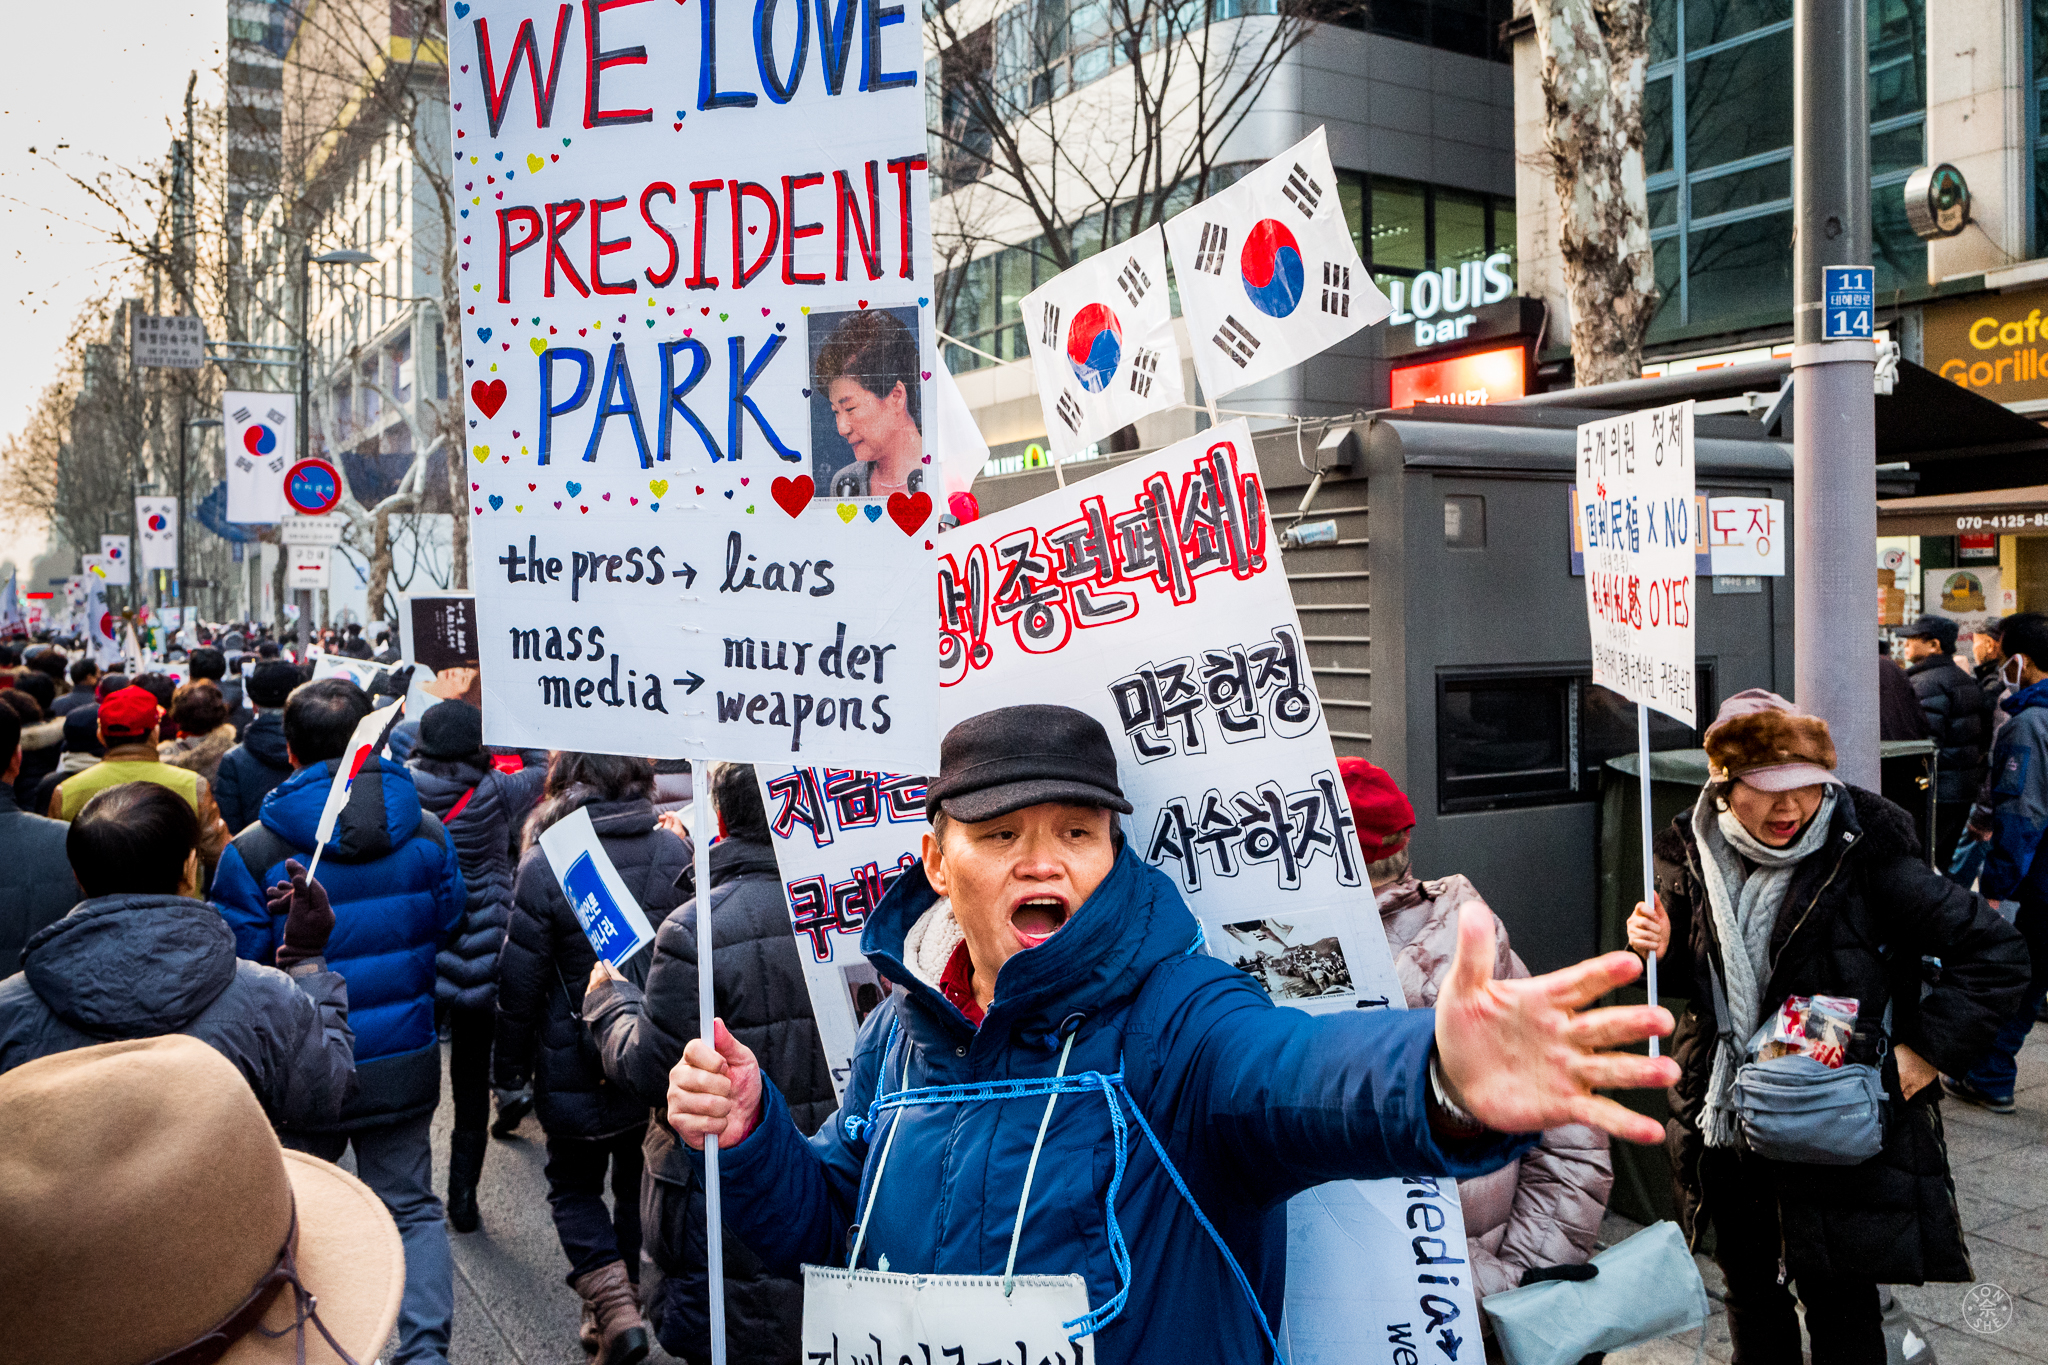 """""""The Contrarian"""".  A supporter of President Park Geun-hye declares his position, in a peaceful demonstration attended by tens of thousands of the republic's citizens in Gangnam, the fashionable district of Seoul. There were demonstrators both for and against President Park to be ousted from office for her alleged role in a corruption scandal. Seoul, South Korea.January 2017. © Jon She.Leica Q (Typ 116), Leica Summilux 28mm f/1.7 ASPH (FLE)."""